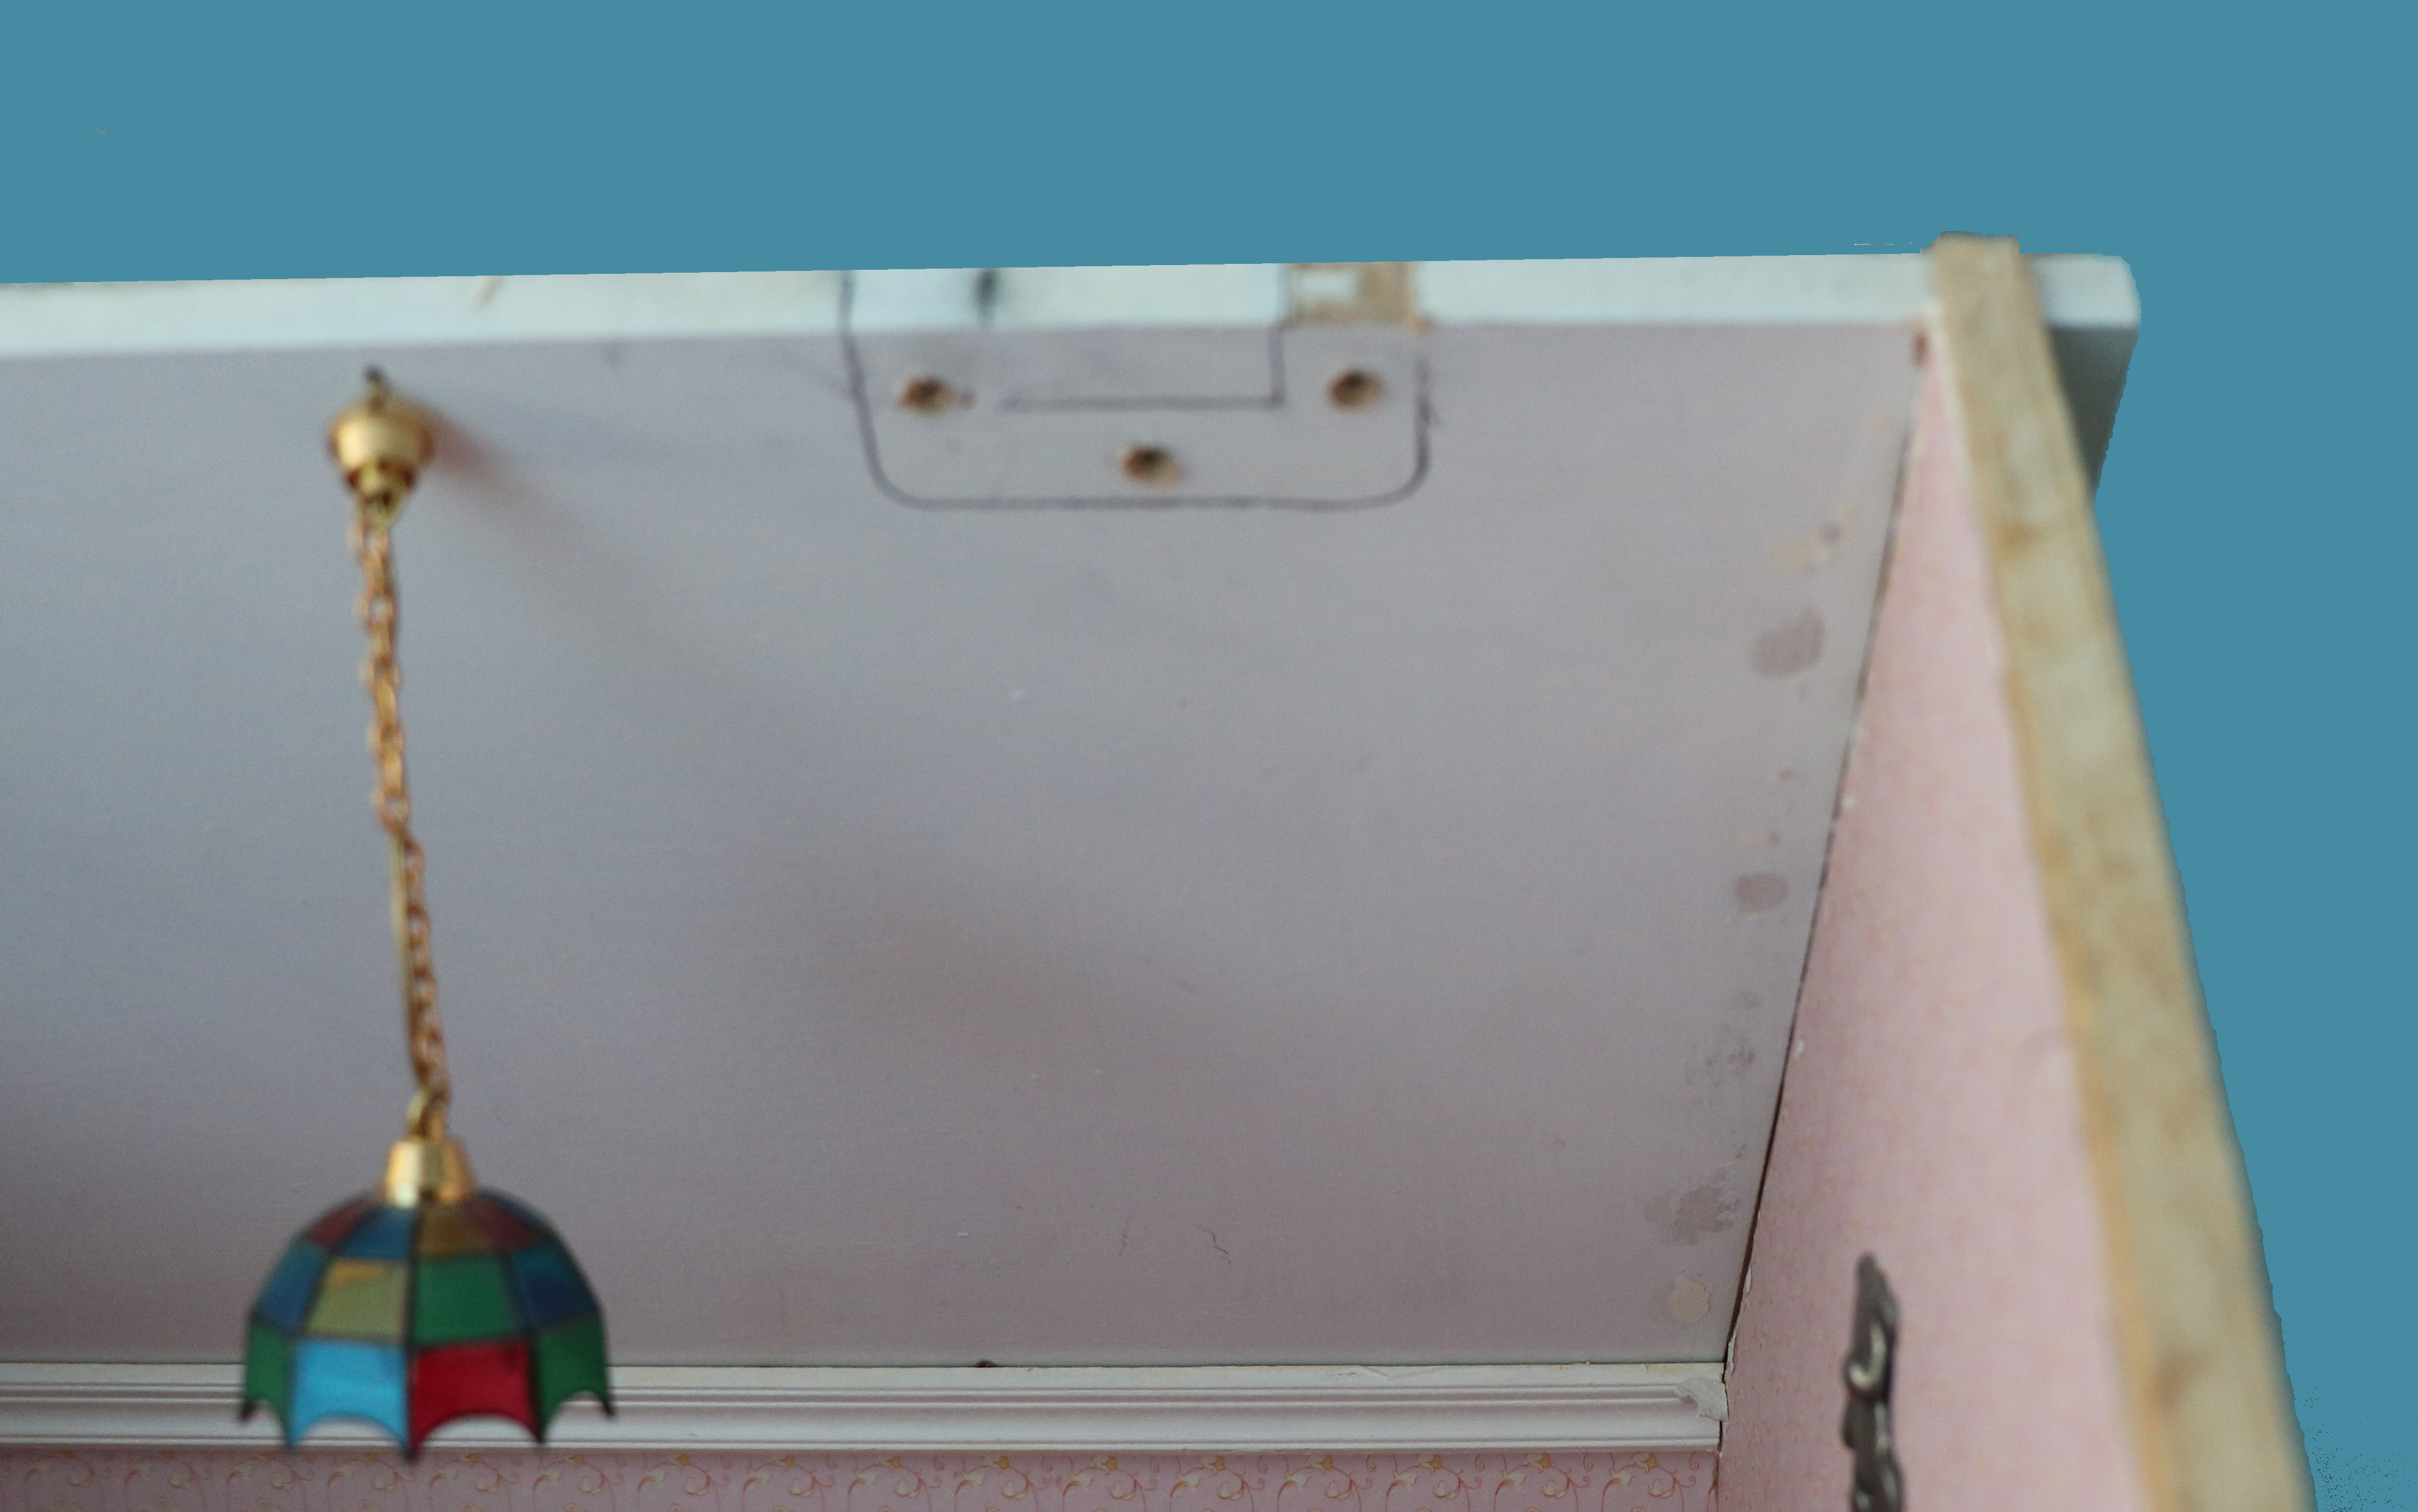 Inner back pitched roof of dolls house showing how hinges were placed